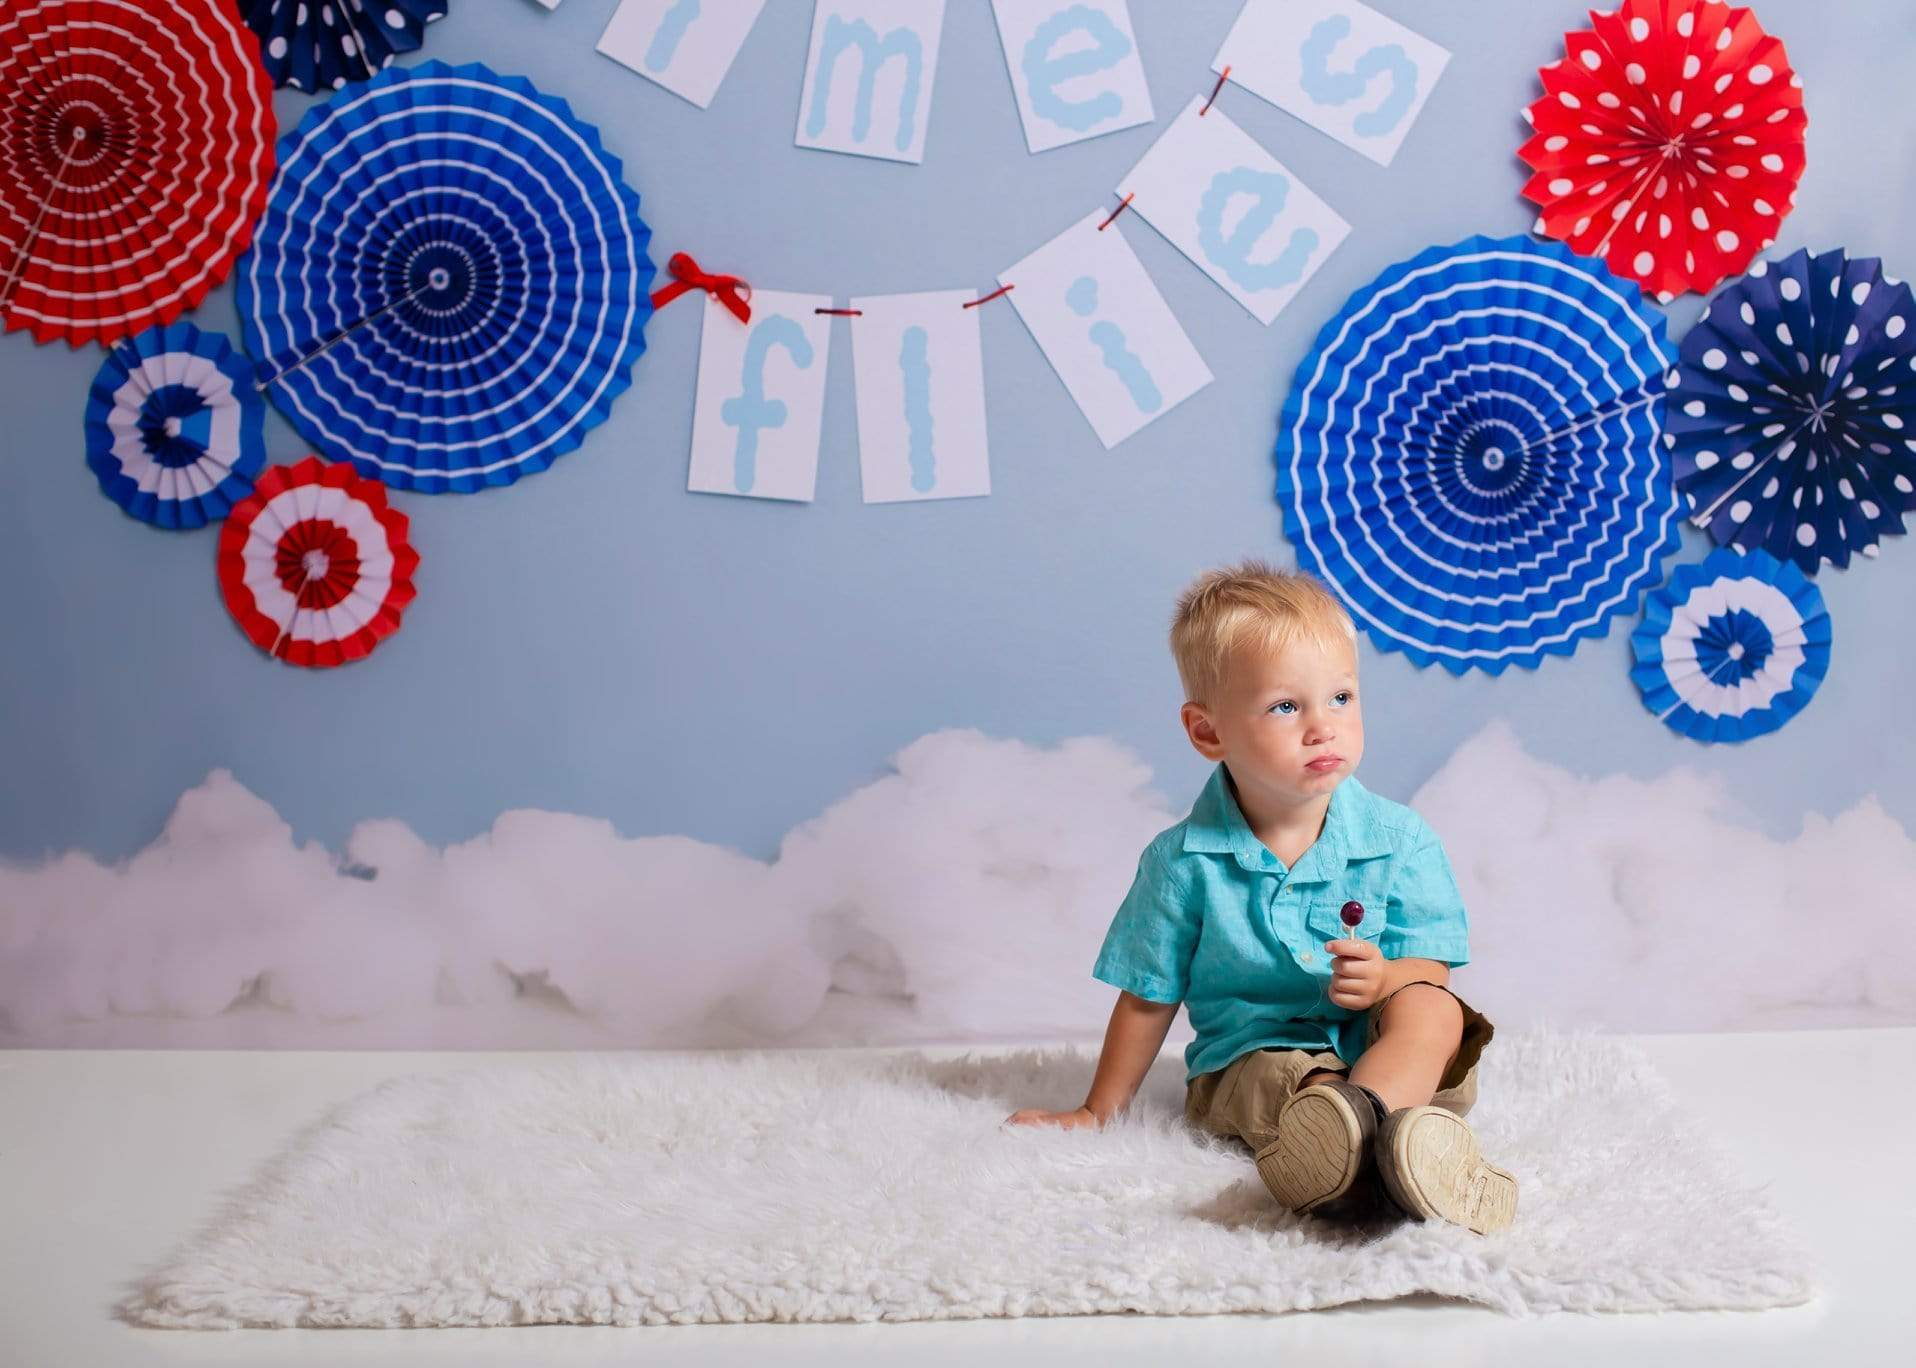 Load image into Gallery viewer, Katebackdrop:Kate Time Flies Children july of 4th Backdrop for Photography Designed by Lisa B